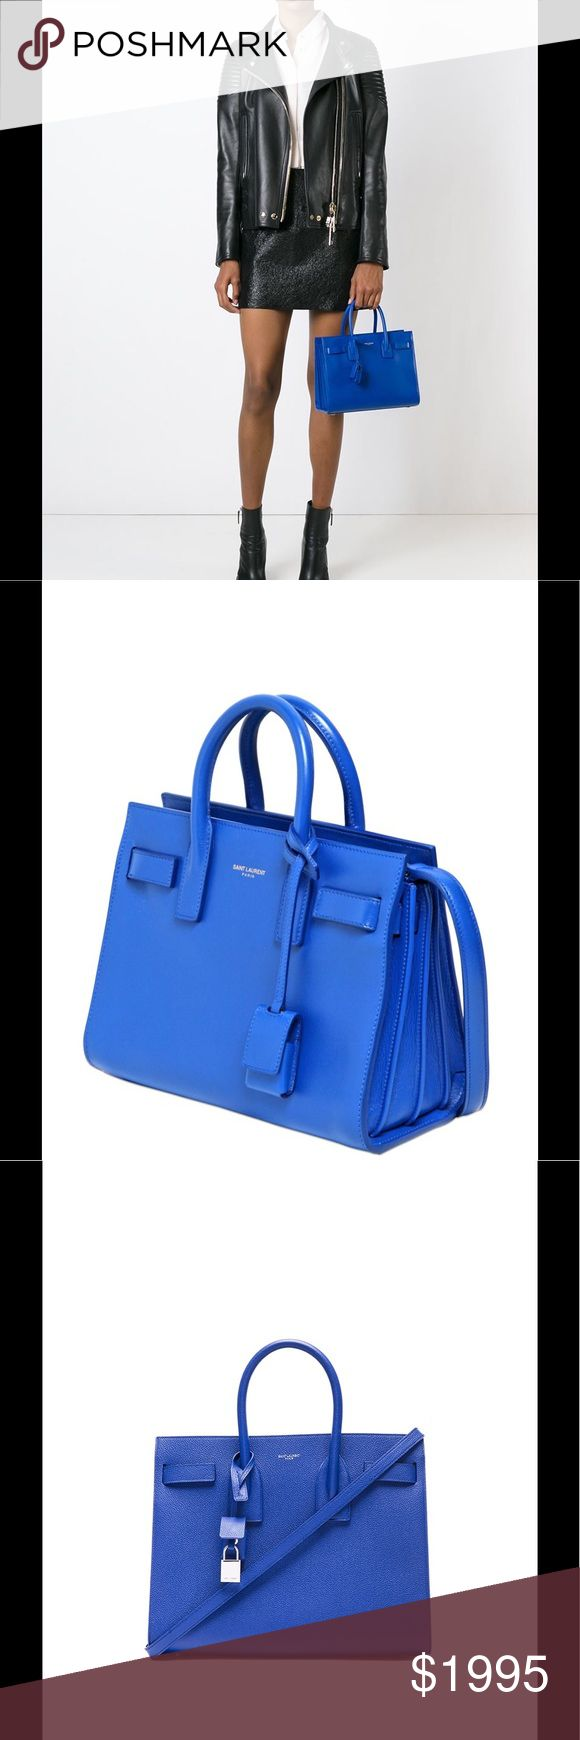 Saint Laurent Baby Sac de Jour Blue - PRICE FIRM😍 SIGNATURE SAINT LAURENT BAG W/ TUBULAR HANDLES, ACCORDION SIDES, COMPRESSION STRAP W/ TABS, EMBOSSED SAINT LAURENT SIGNATURE AND REMOVABLE SHOULDER STRAP.   Dimensions  10.1 inches  8.2 inches  5.1 inches  100% Calf-skin leather  •	Grosgrain lining  •	REMOVABLE LEATHER ENCASED PADLOCK  •	Silver-TONED HARDWARE  •	1 SLOT POCKET AND KEY RING W/ PADLOCK KEYS AFFIXED TO INTERIOR W/ A SNAP  •	BRASS FEET  •	handle drop : 9,5 cm, shoulder strap drop…